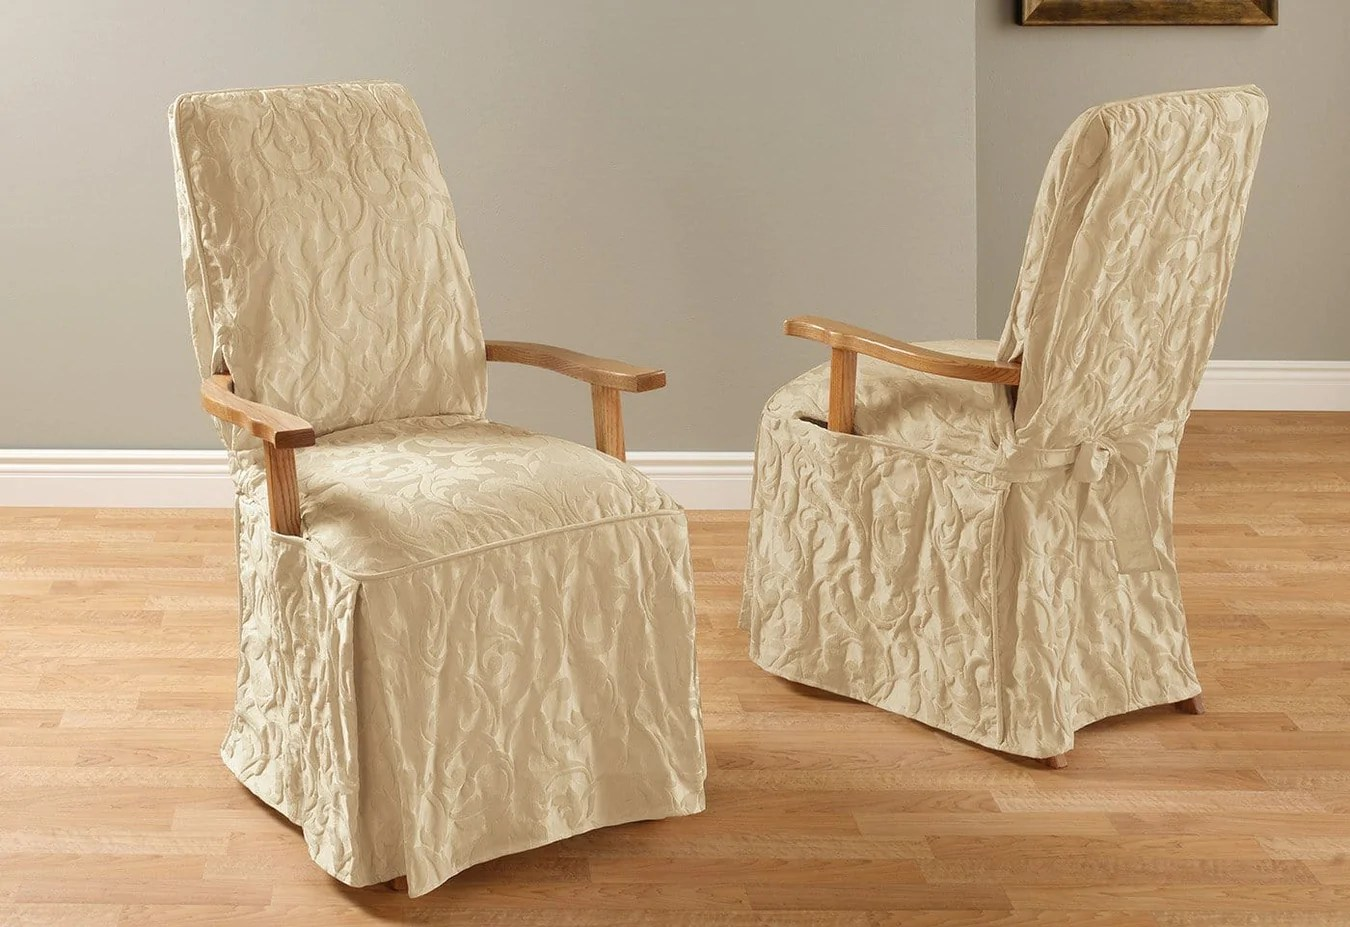 Damask Dining Chair Matelasse Damask Arm Long Dining Chair Slipcover Surefit